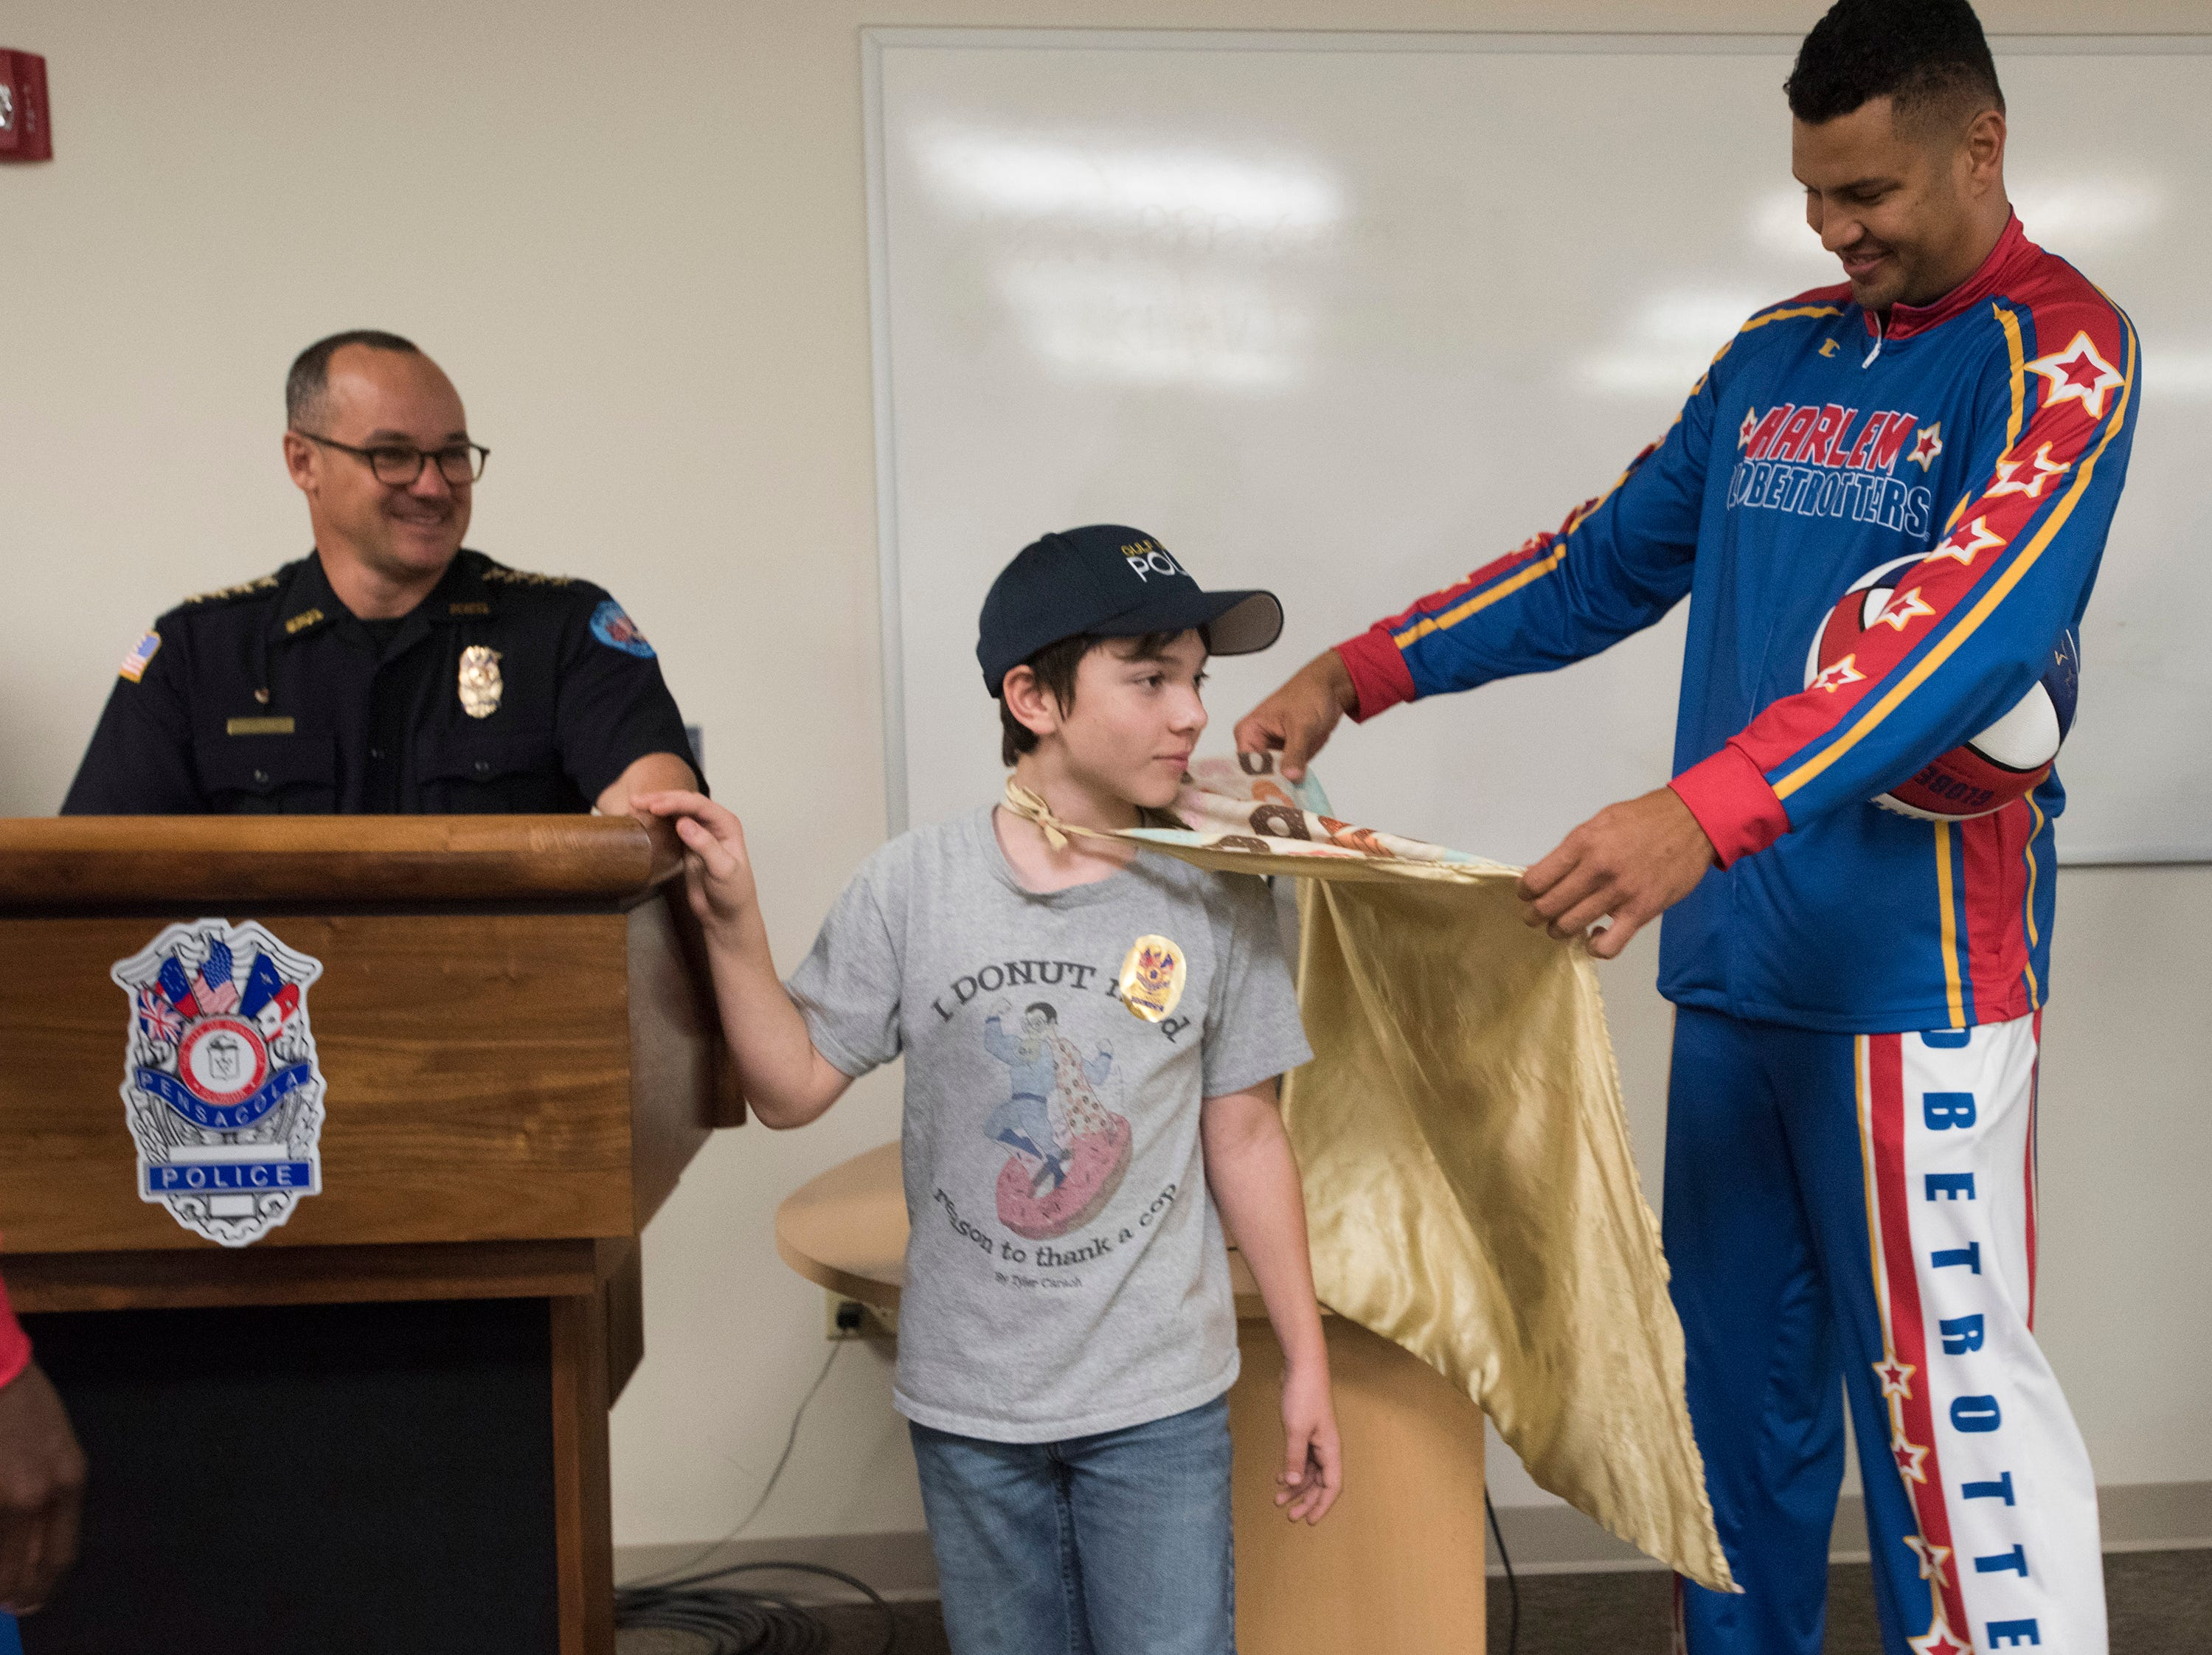 "El Gato Melendez, a member of the Harlem Globetrotters, checks out Tyler Carach's outfit during a birthday party for the 11-year old at the Pensacola Police Dept. on Wednesday, Nov. 7, 2018, while Chief Tommi Lyter looks on.  Carach is also known as the ""donut boy"" and has delivered more than 70,000 of the pastries to law enforcement officers around the country."